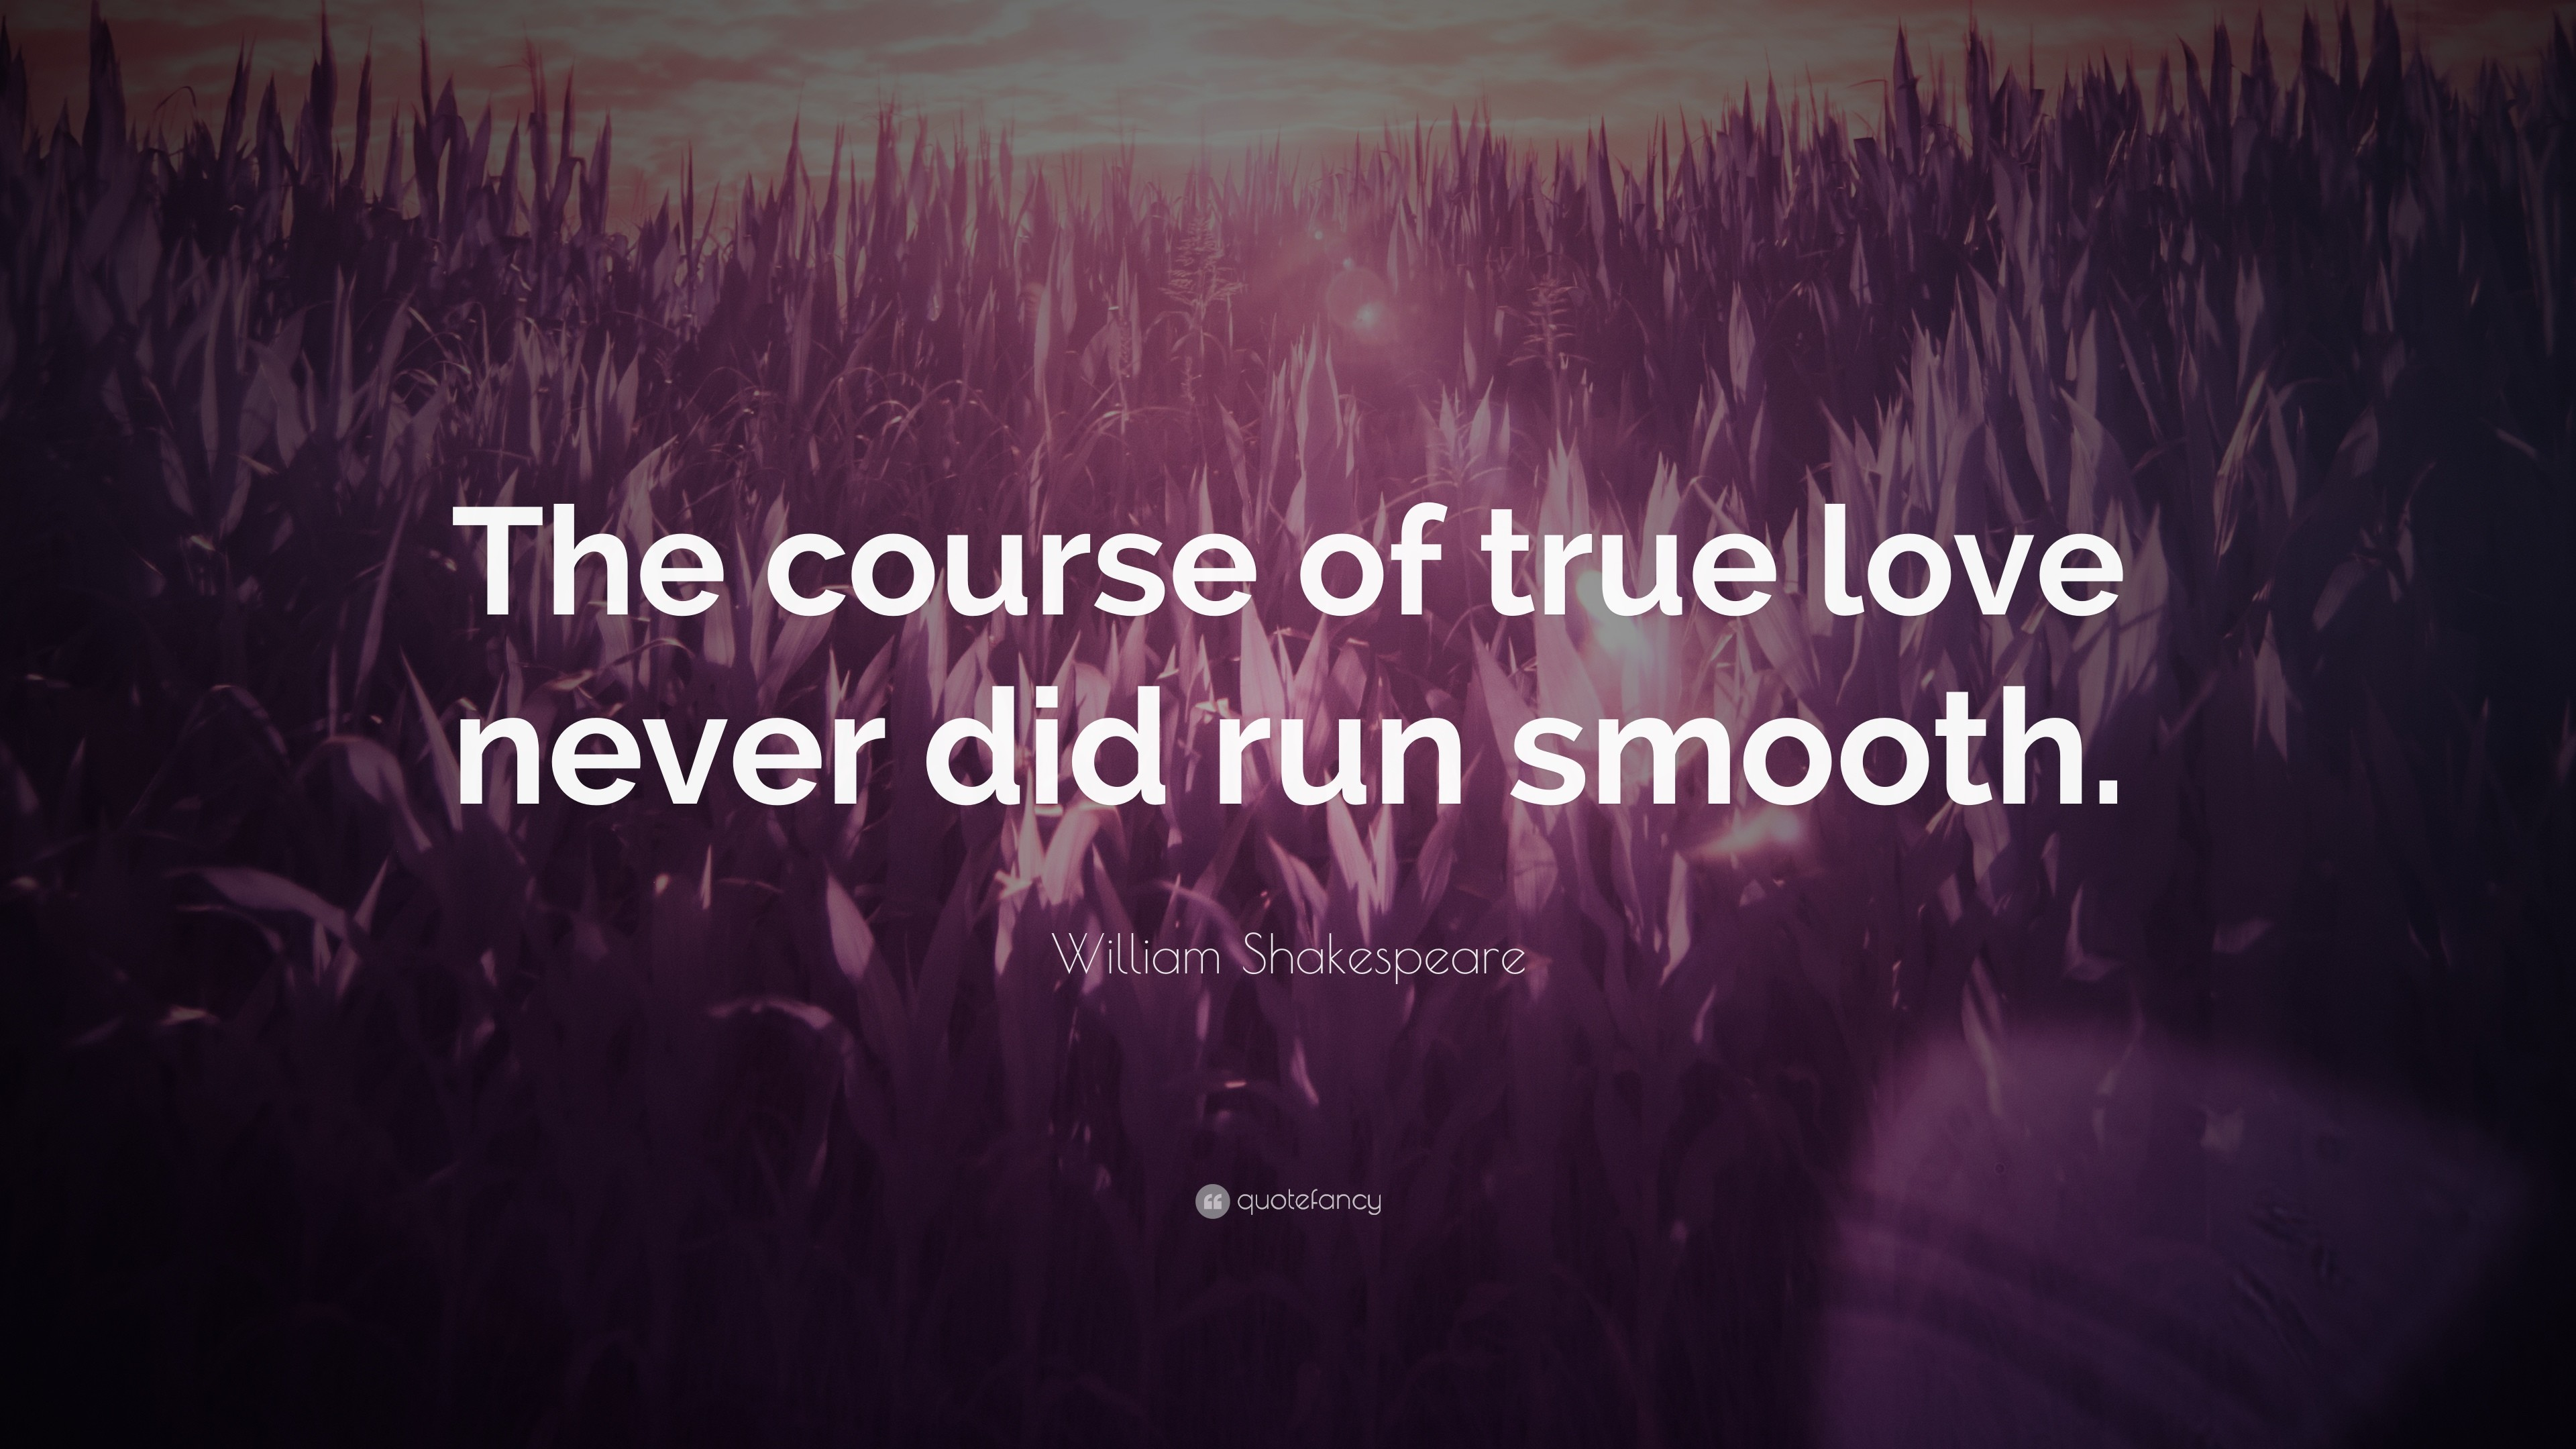 True Love Hd Wallpapers With Quotes : True Love Wallpapers (64+ images)